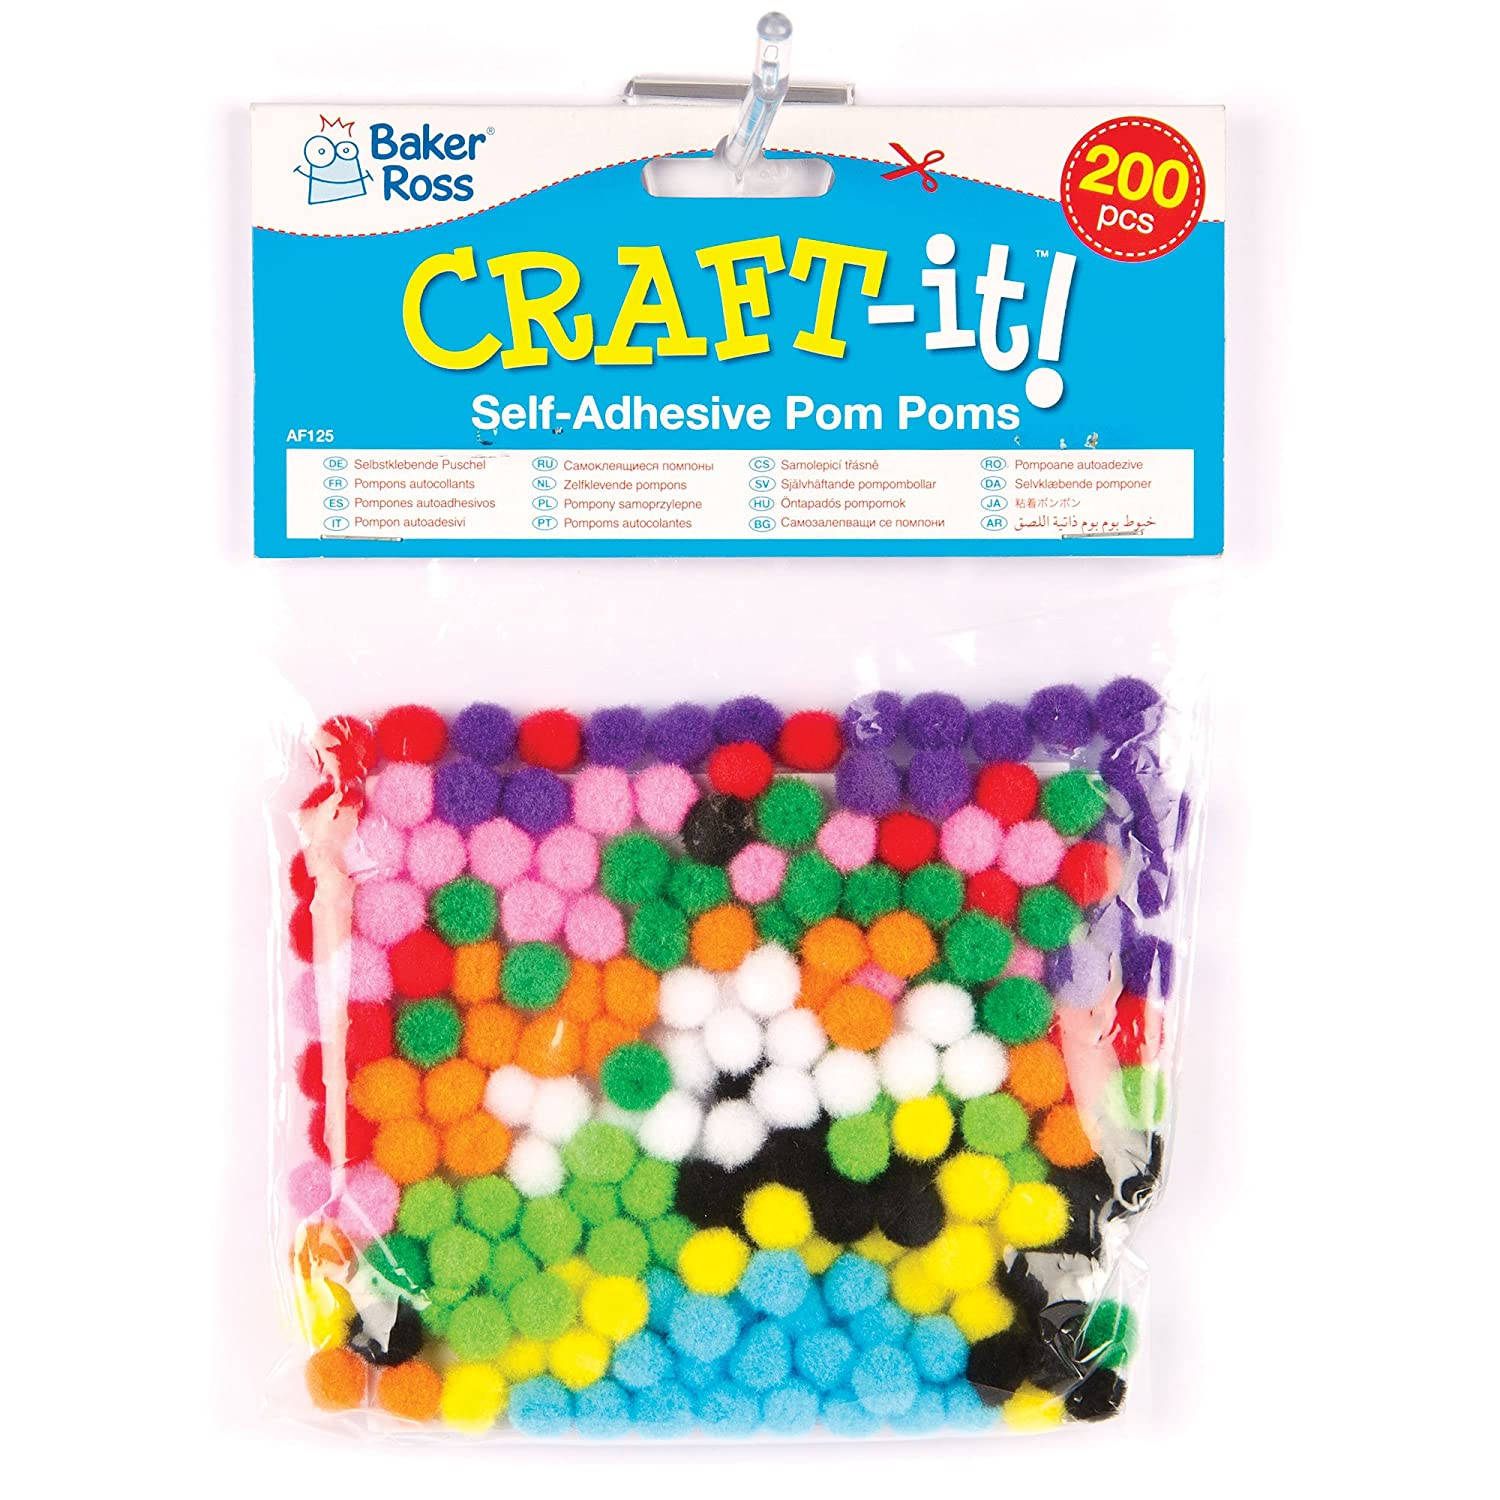 Craft pom poms in bulk - Amazon Com Self Adhesive Pom Poms For Children For Crafting Pack Of 200 Toys Games